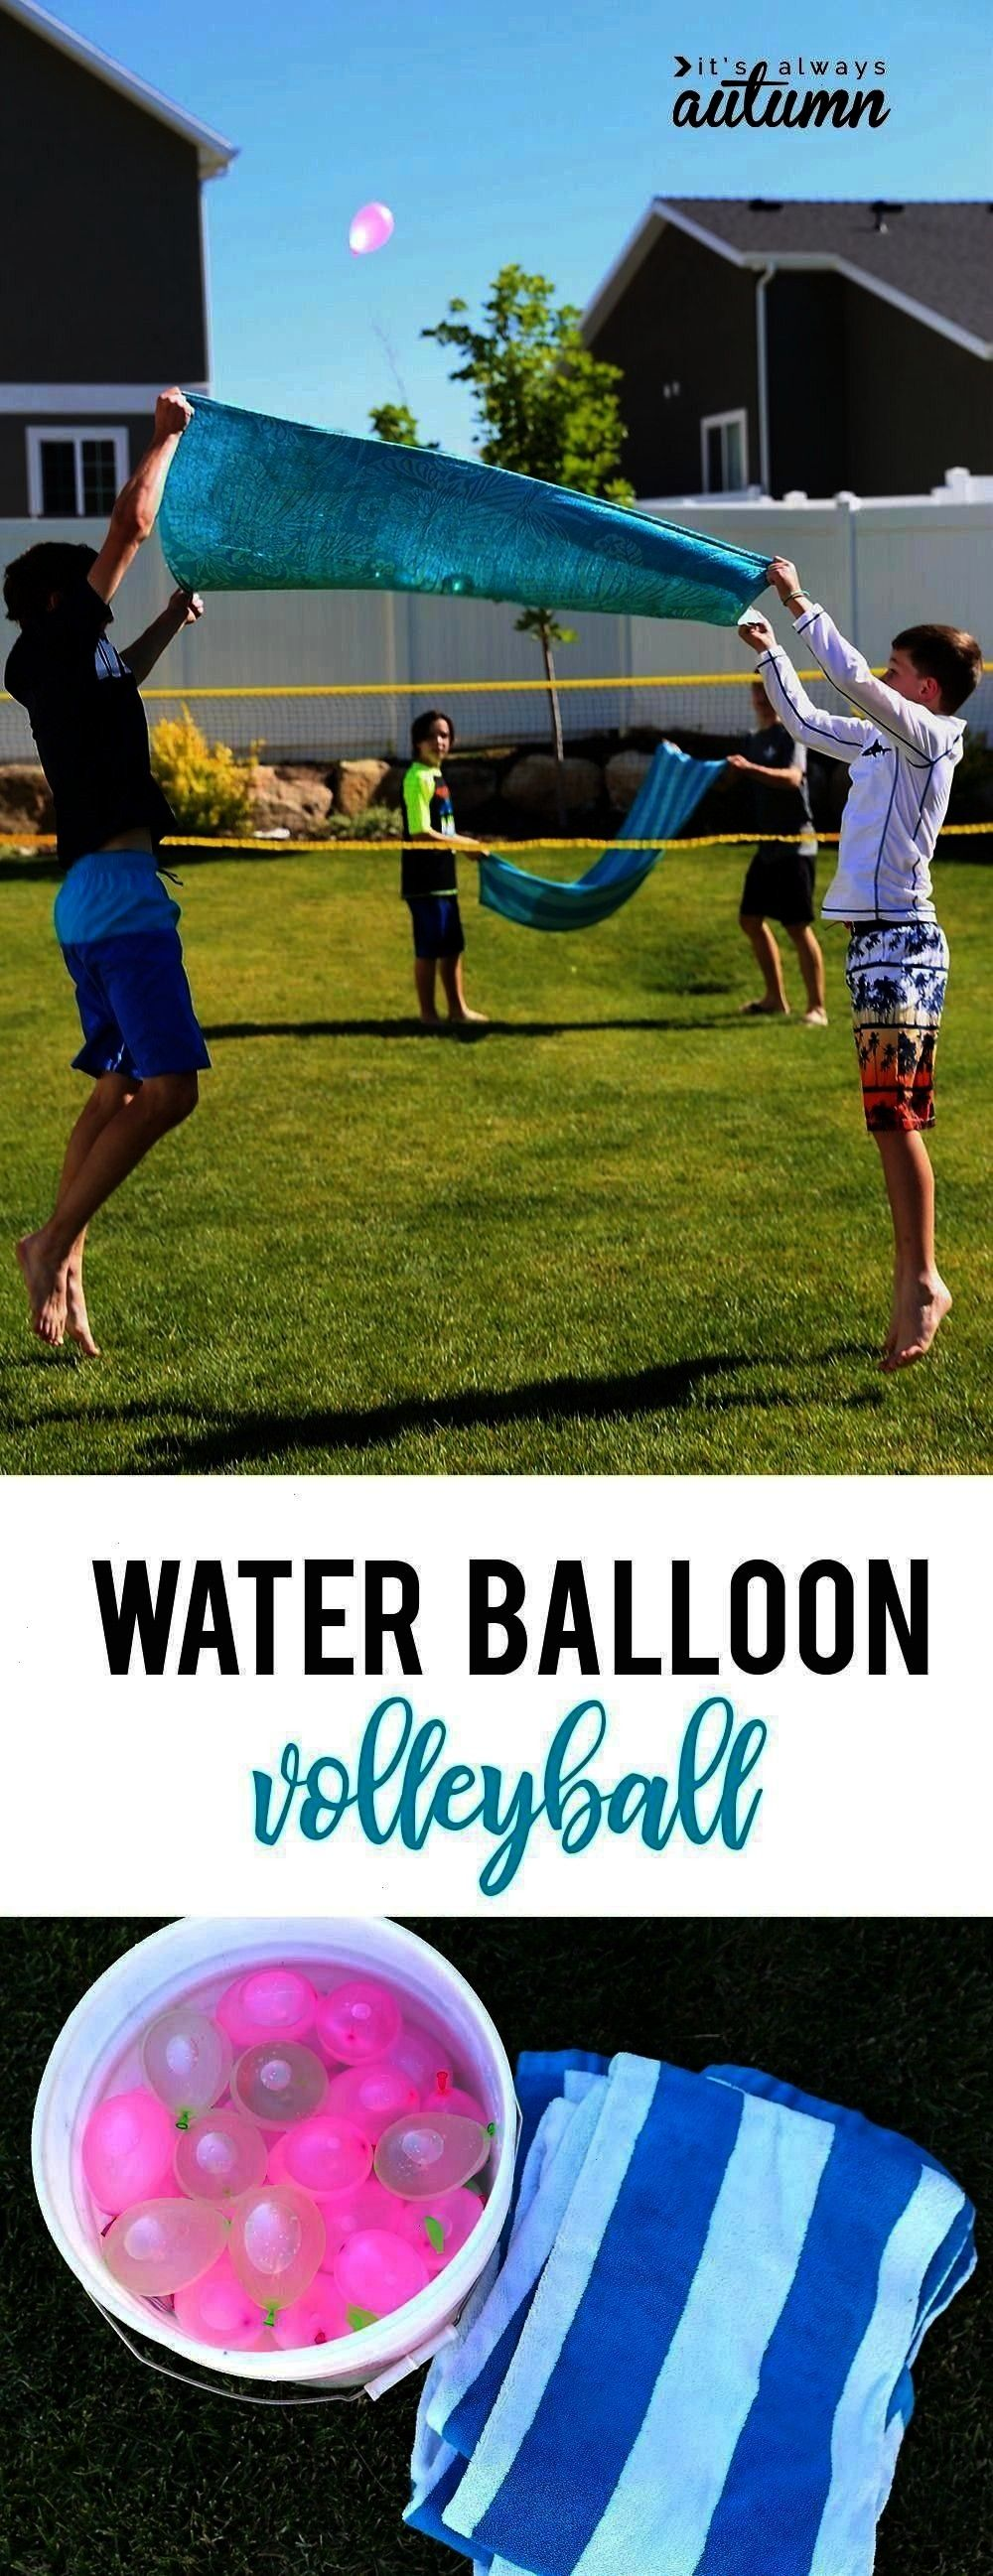 Engagementpartygames Partyallnight Relaypatrol Volleyball Pawlevel Relaypaw Outdoor Youtube Ball In 2020 Group Games For Kids Water Games For Kids Youth Games